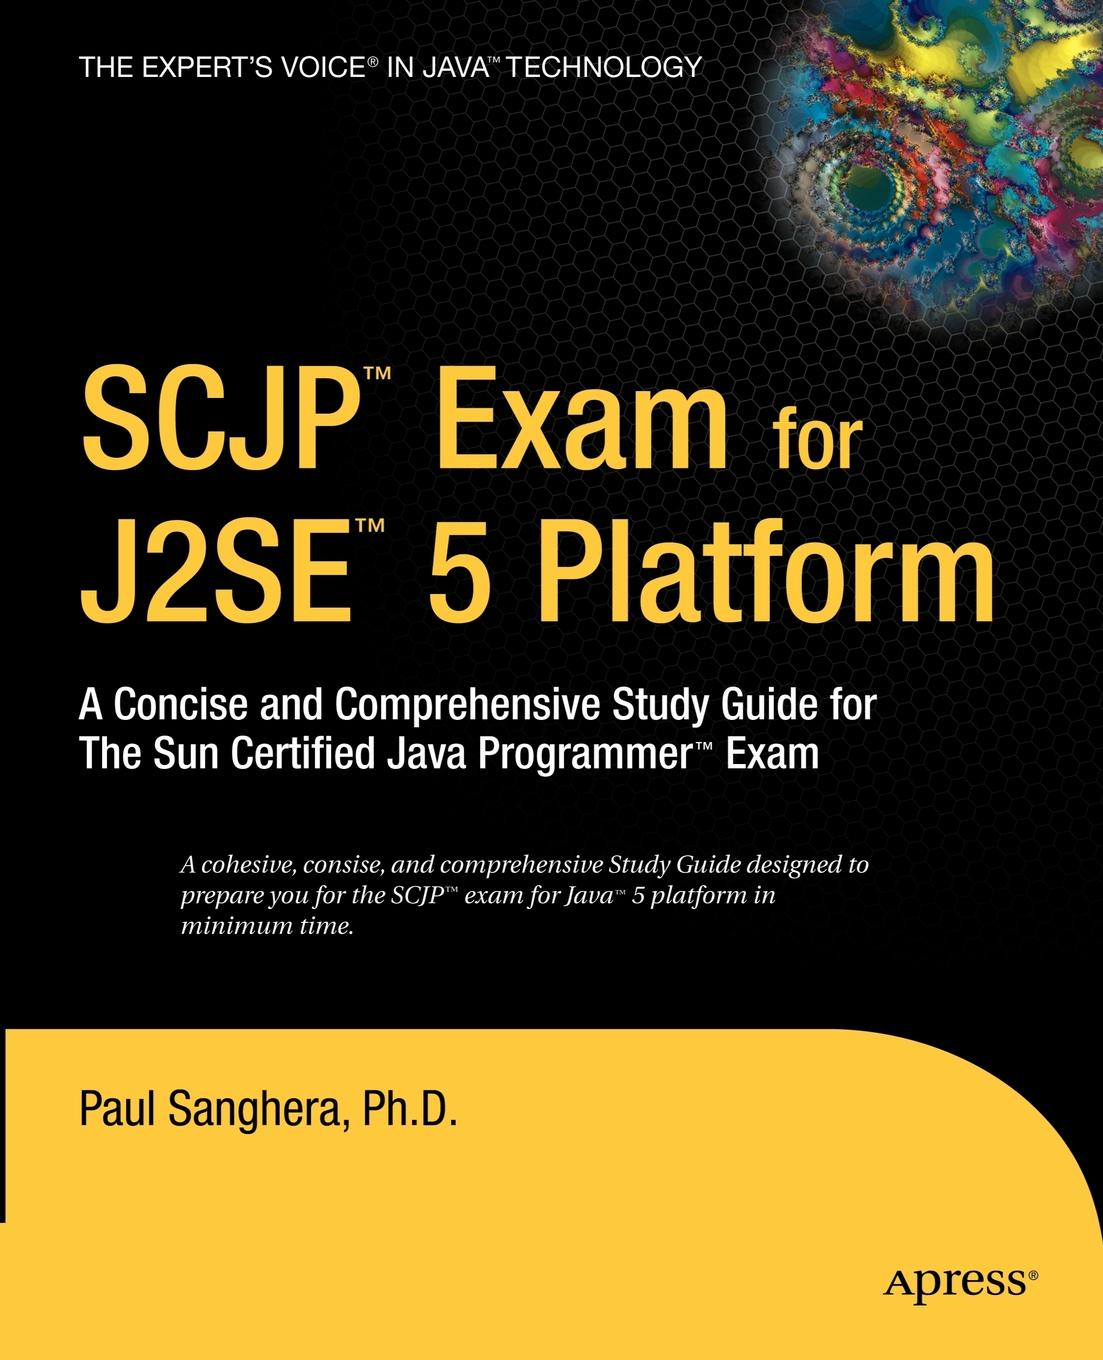 Paul Sanghera SCJP Exam for J2SE 5. A Concise and Comprehensive Study Guide for the Sun Certified Java Programmer Exam liz gallacher itil foundation exam study guide